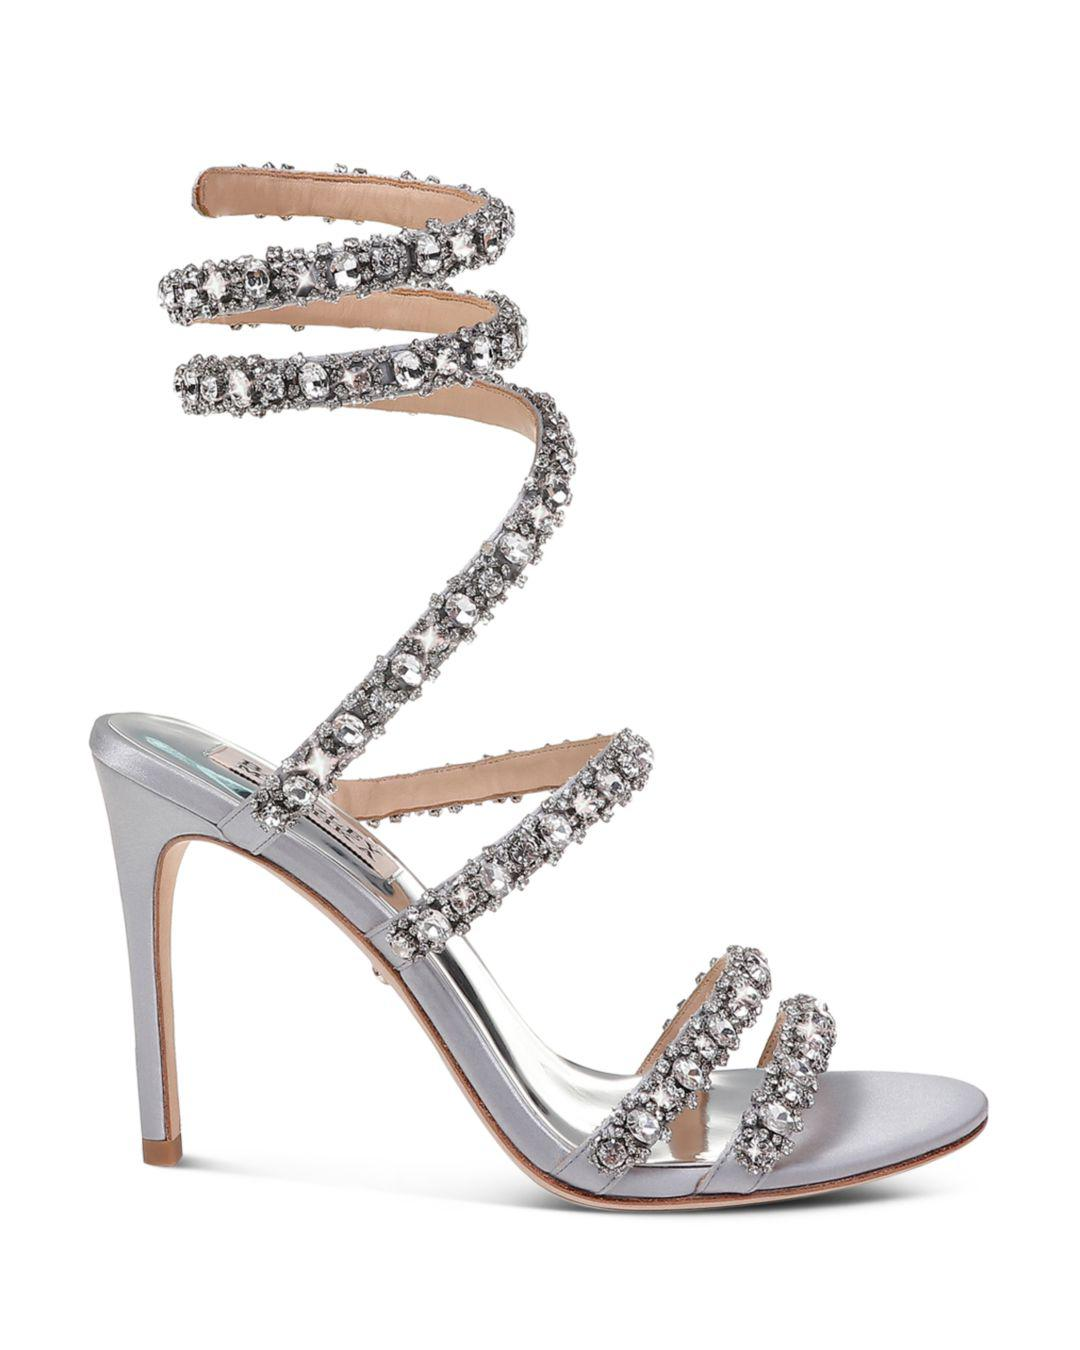 9419dcf98 Lyst - Badgley Mischka Women s Peace Embellished Satin Ankle Wrap High-heel  Sandals in Metallic - Save 36%